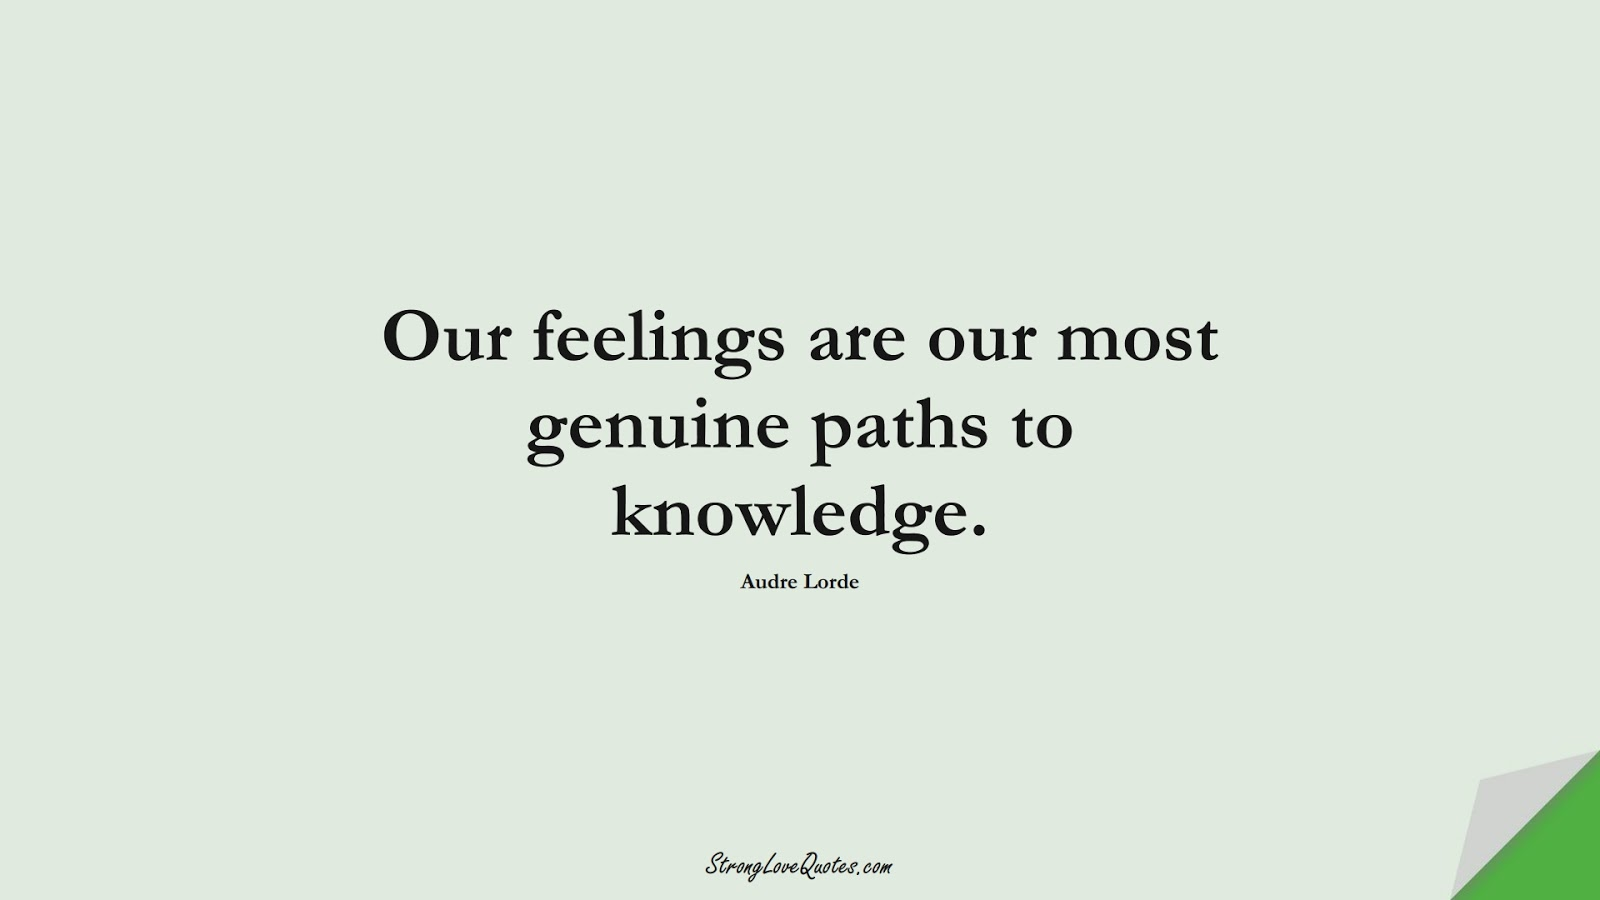 Our feelings are our most genuine paths to knowledge. (Audre Lorde);  #KnowledgeQuotes